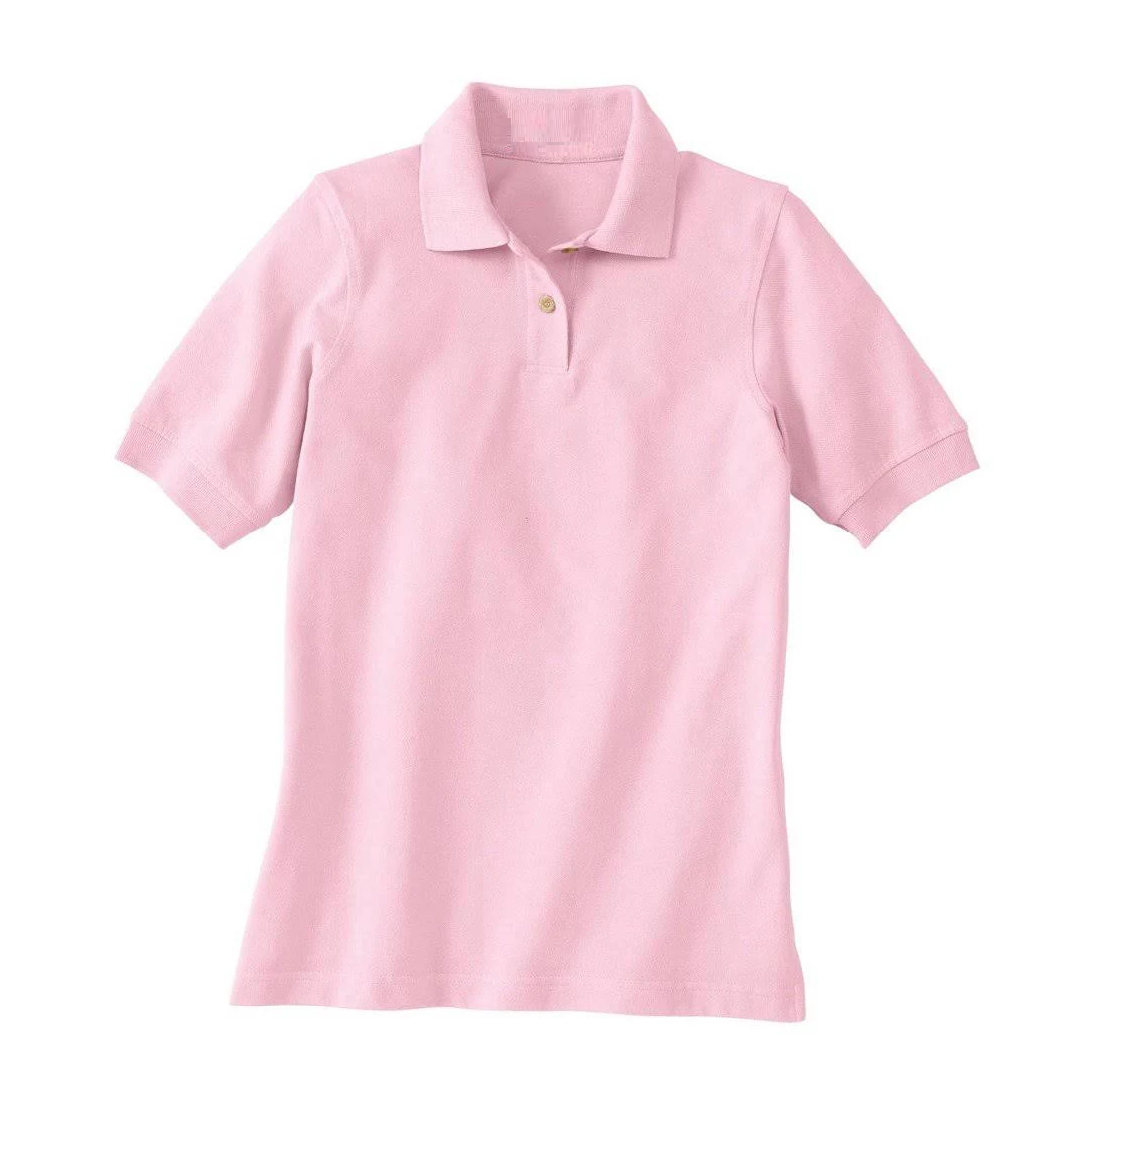 Cavallo Mercury Polo - Equestrian Fashion Outfitters